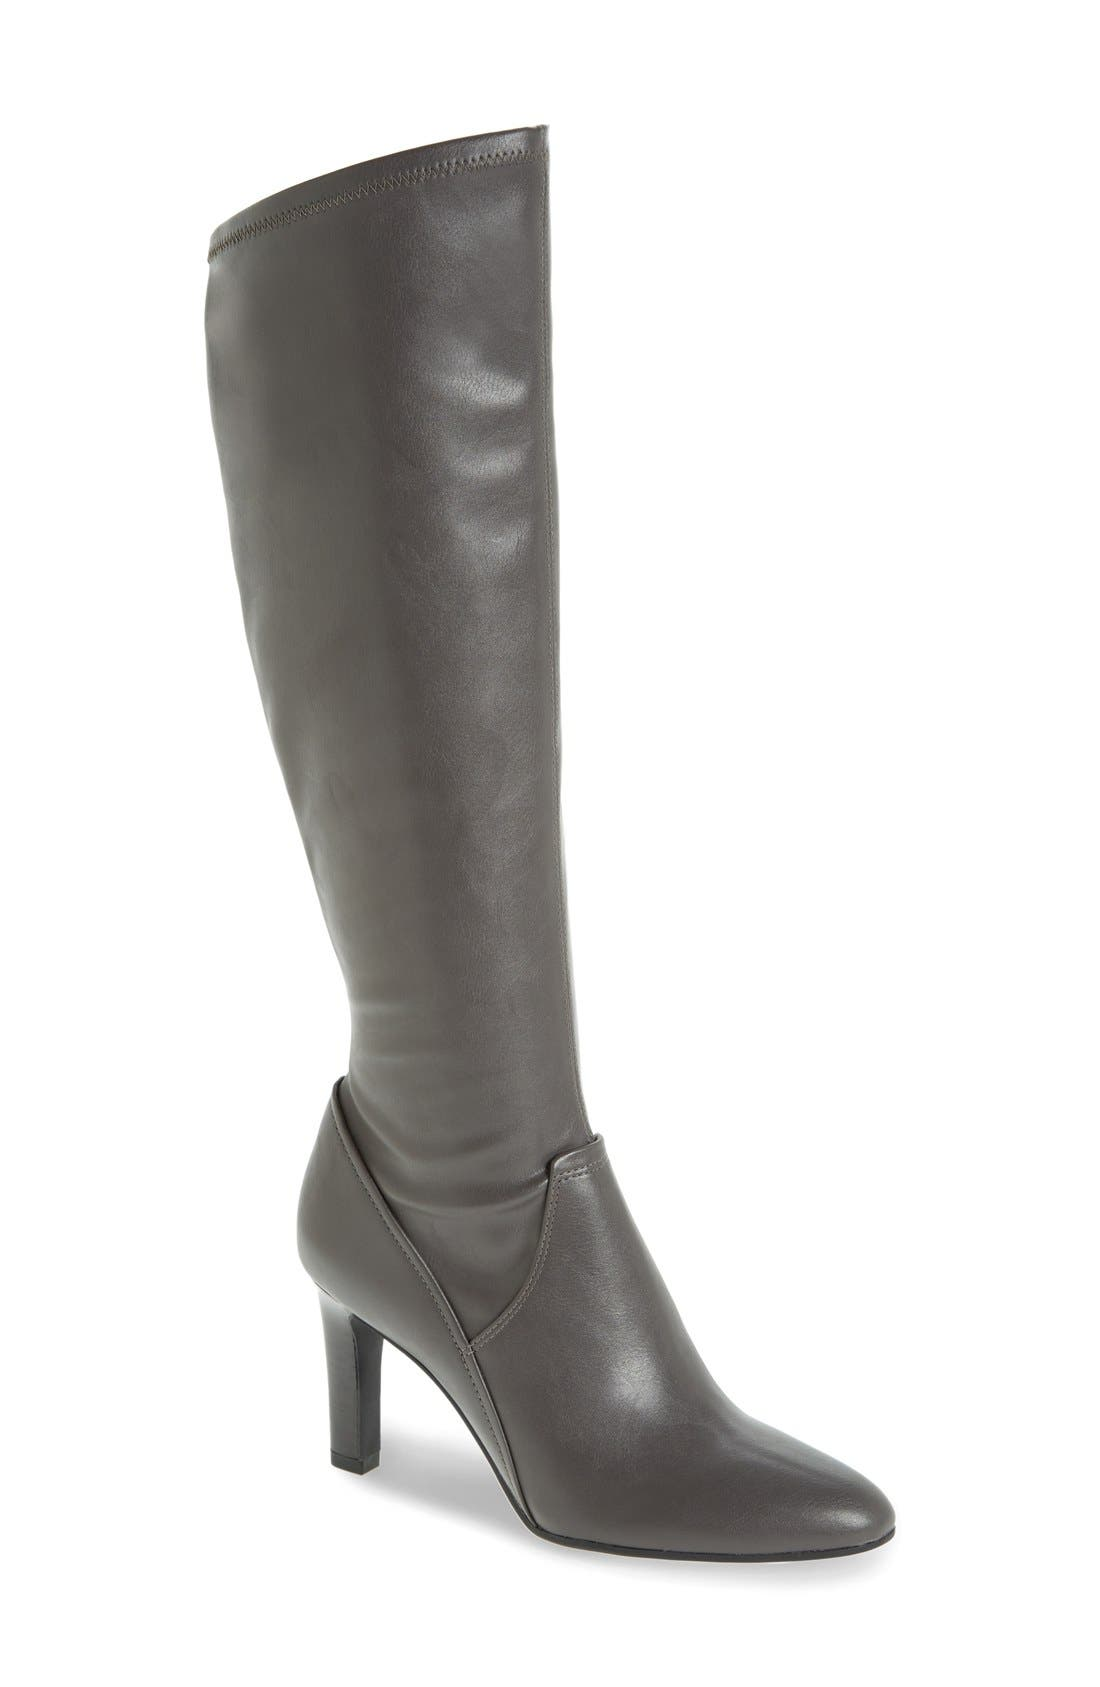 Alternate Image 1 Selected - Franco Sarto 'Stampeed' Stretch Tall Boot (Women)